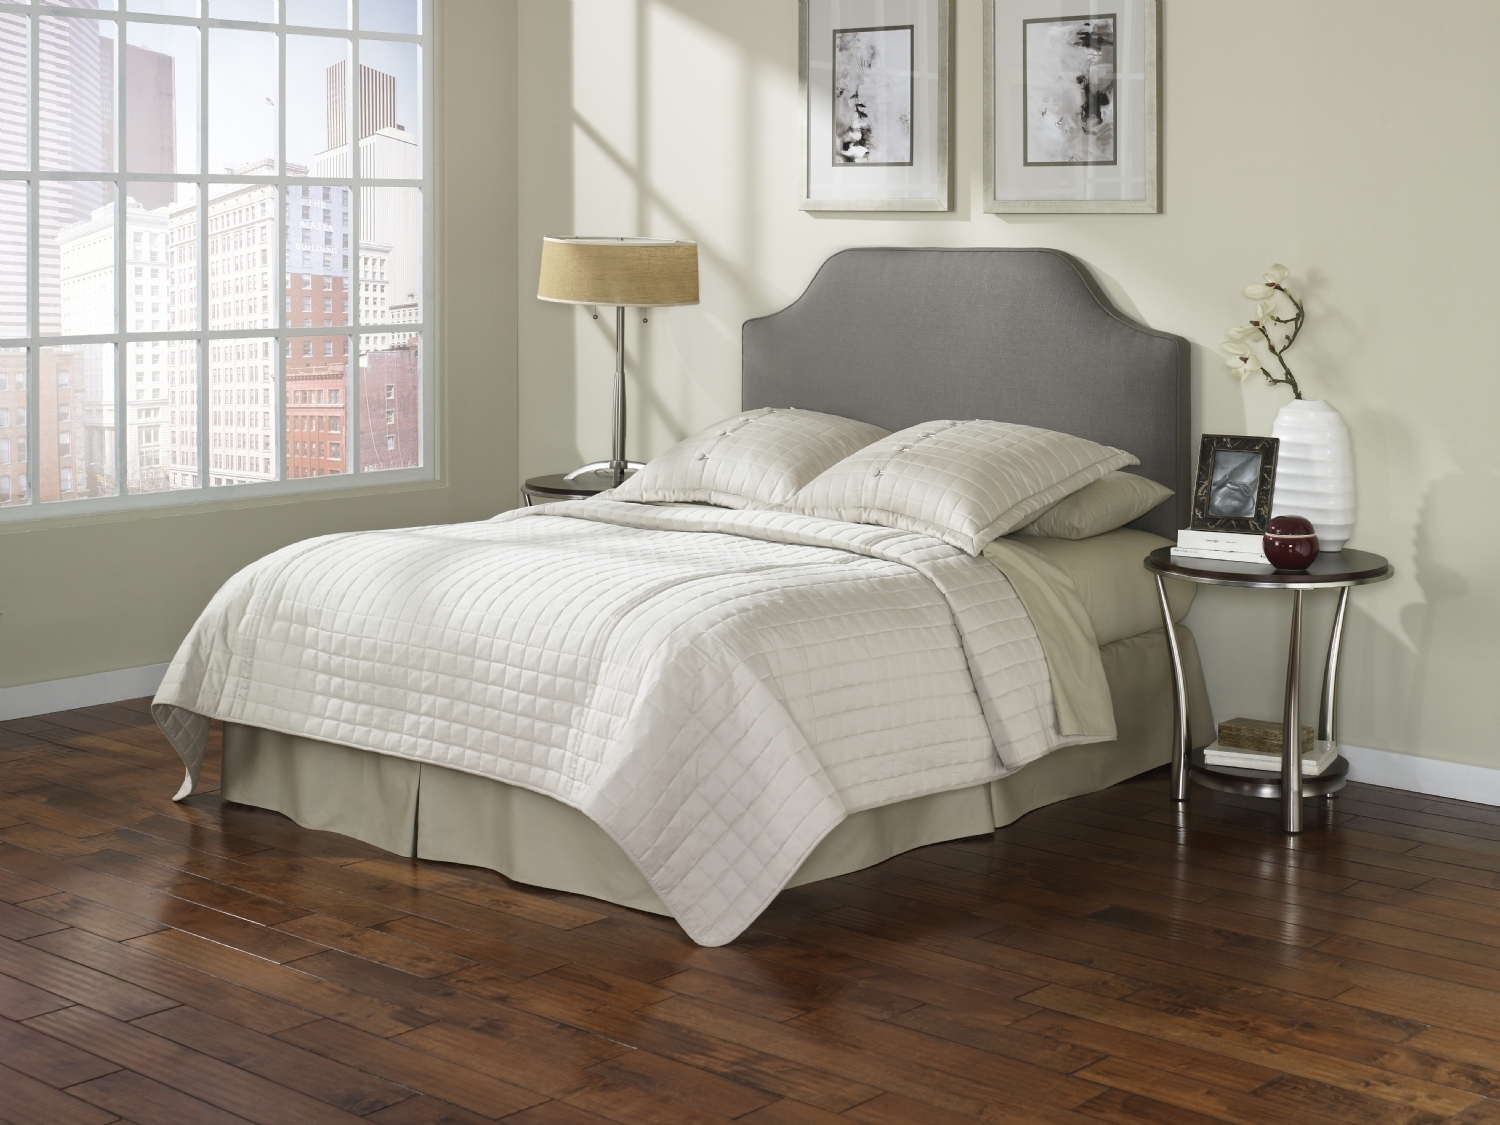 Image of: Cute Gray Upholstered Headboard